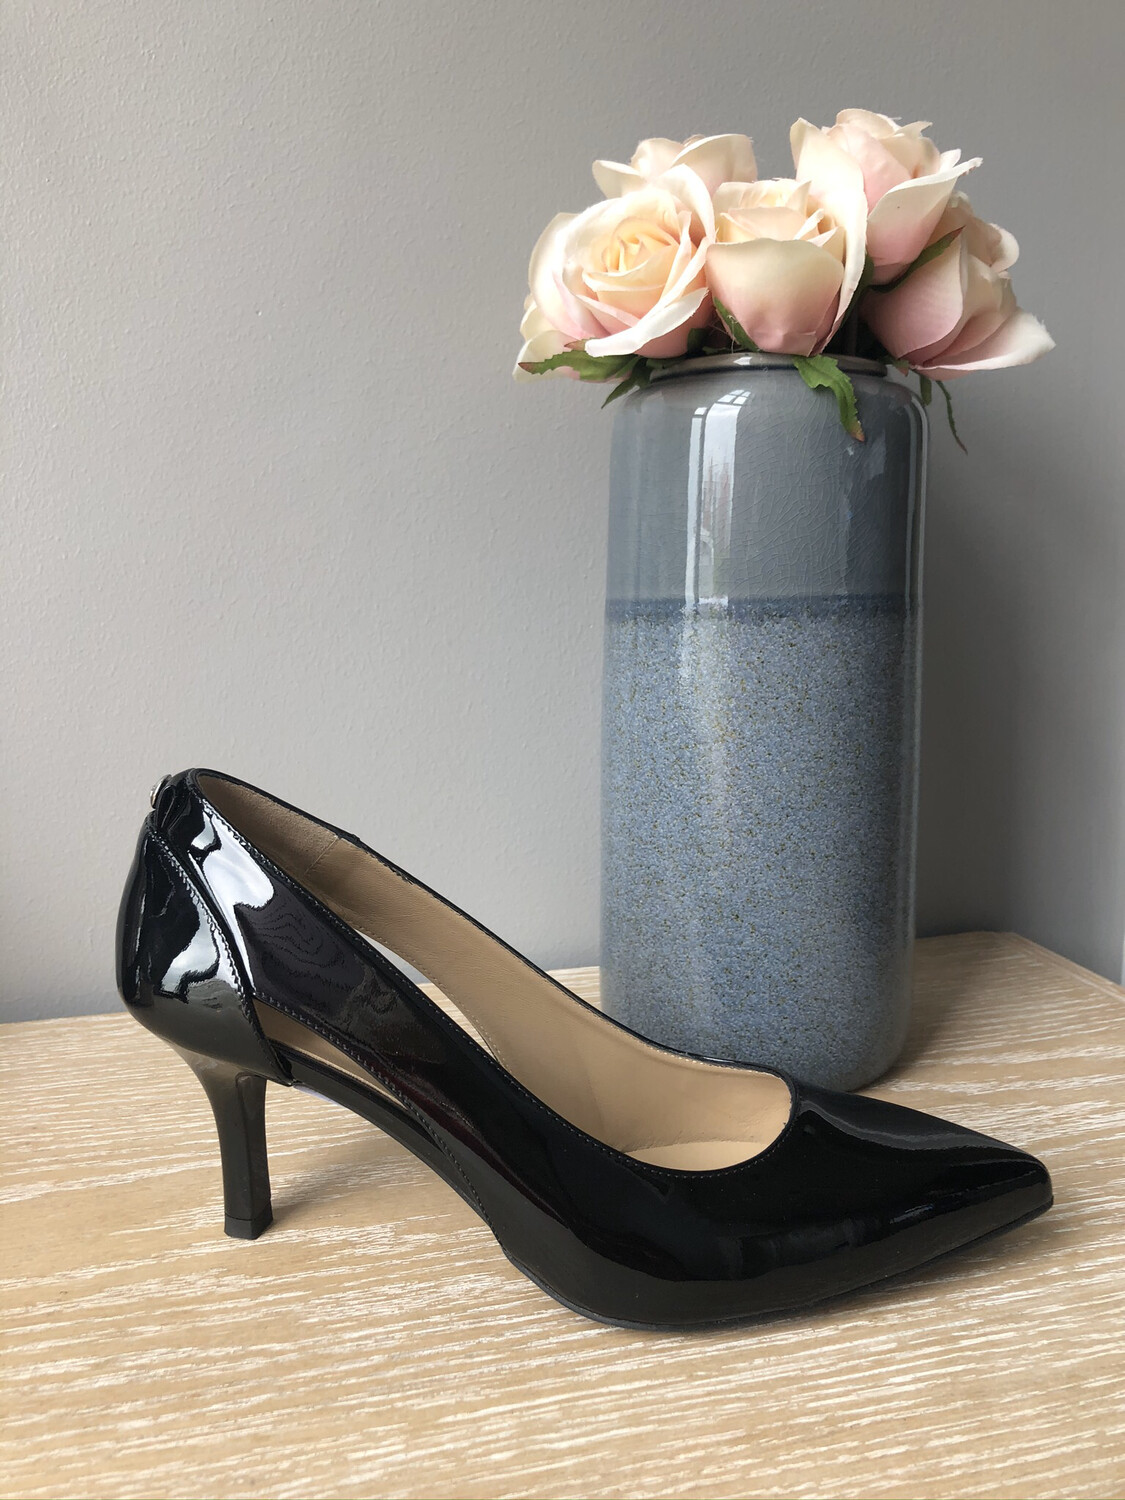 Black Patent Kitten Heel With Cut Out Detail